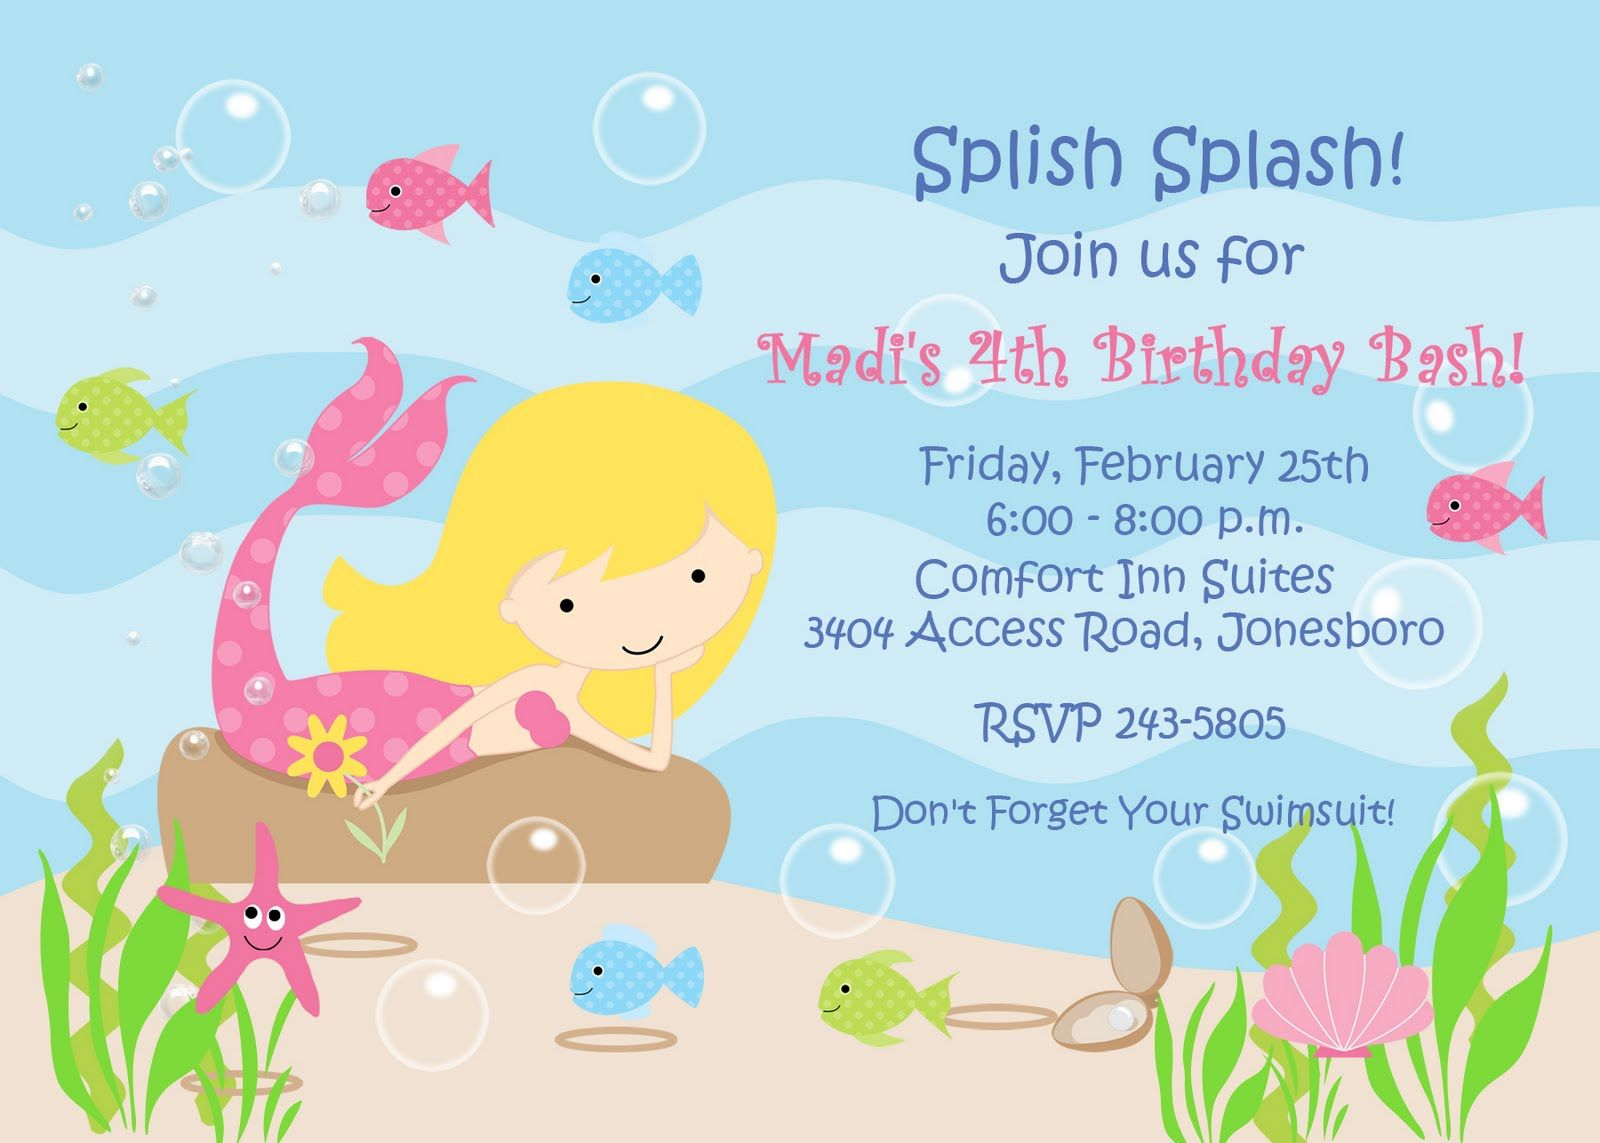 Grooving With The Glover S Madi S 4th Birthday Party Mermaid Birthday Party Invitations Party Invite Template Little Mermaid Invitations